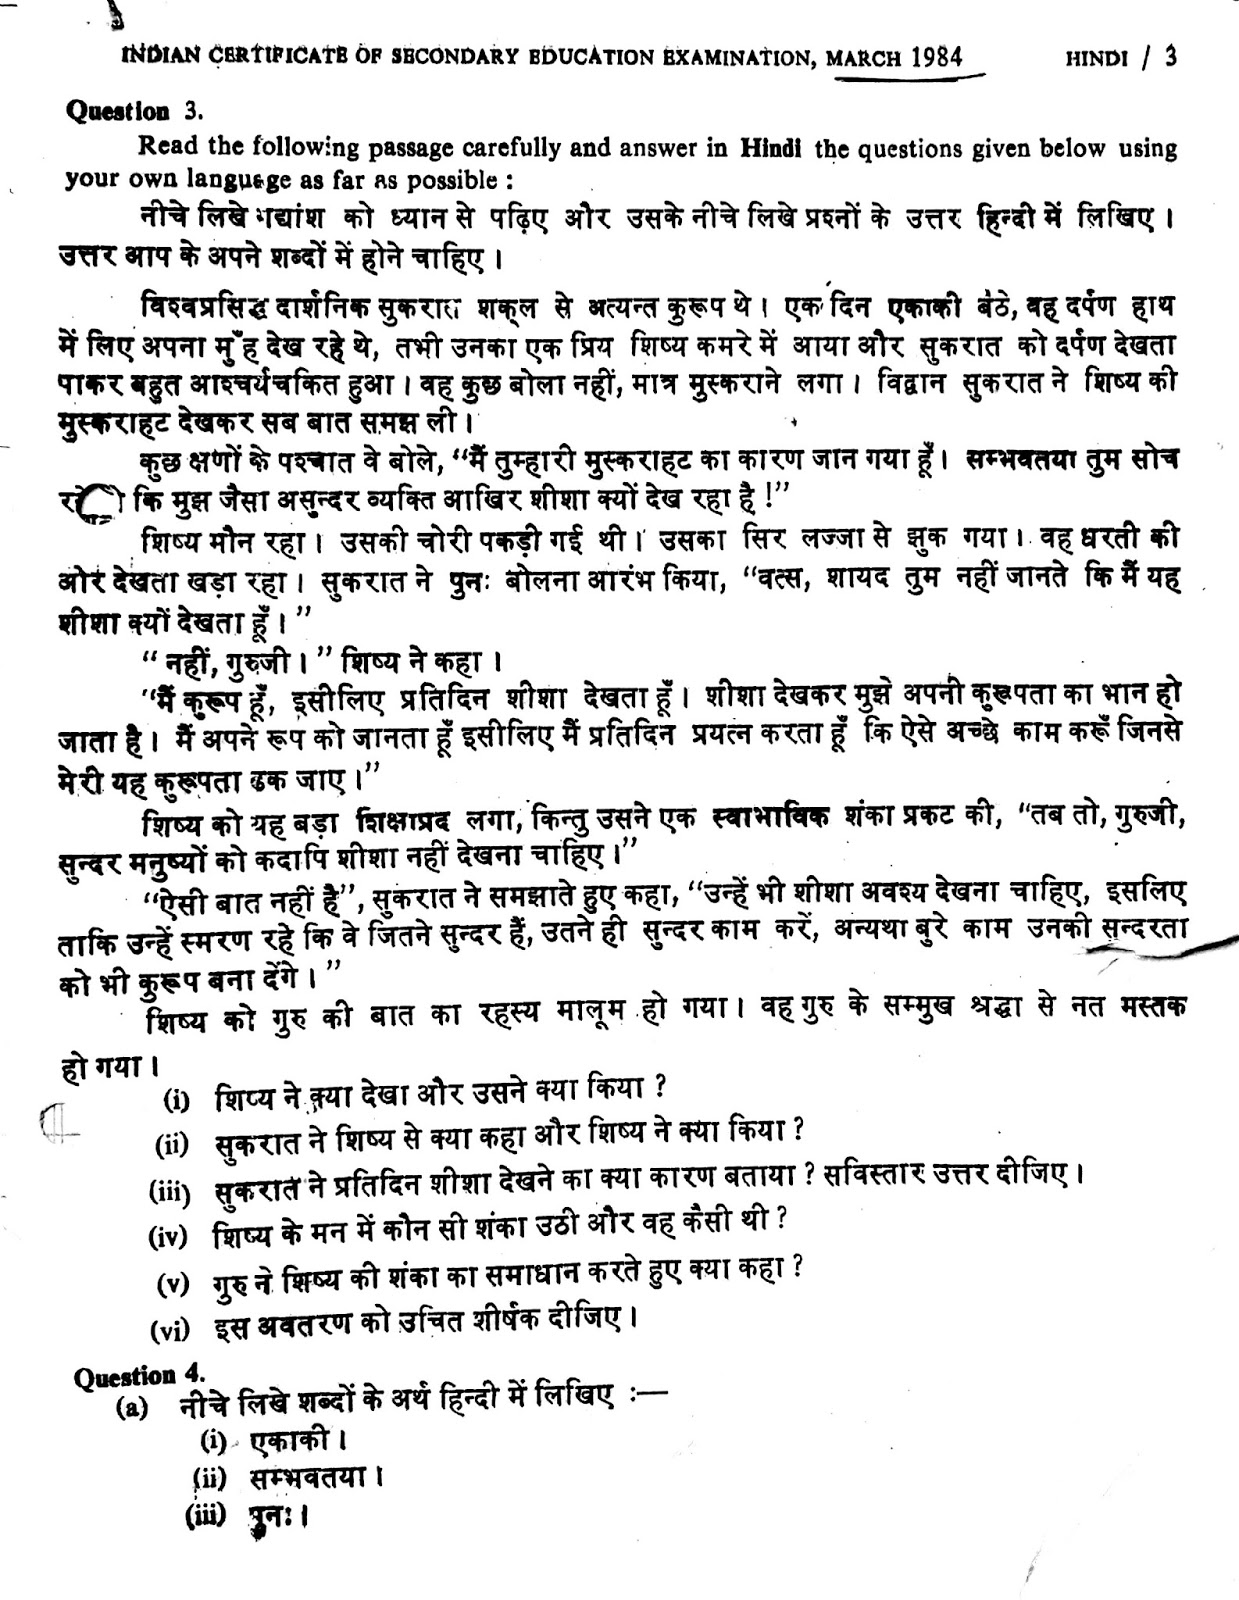 Hindi Grammar Work Sheet Collection For Classes 5 6 7 Amp 8 Collection Of Icse Comprehension